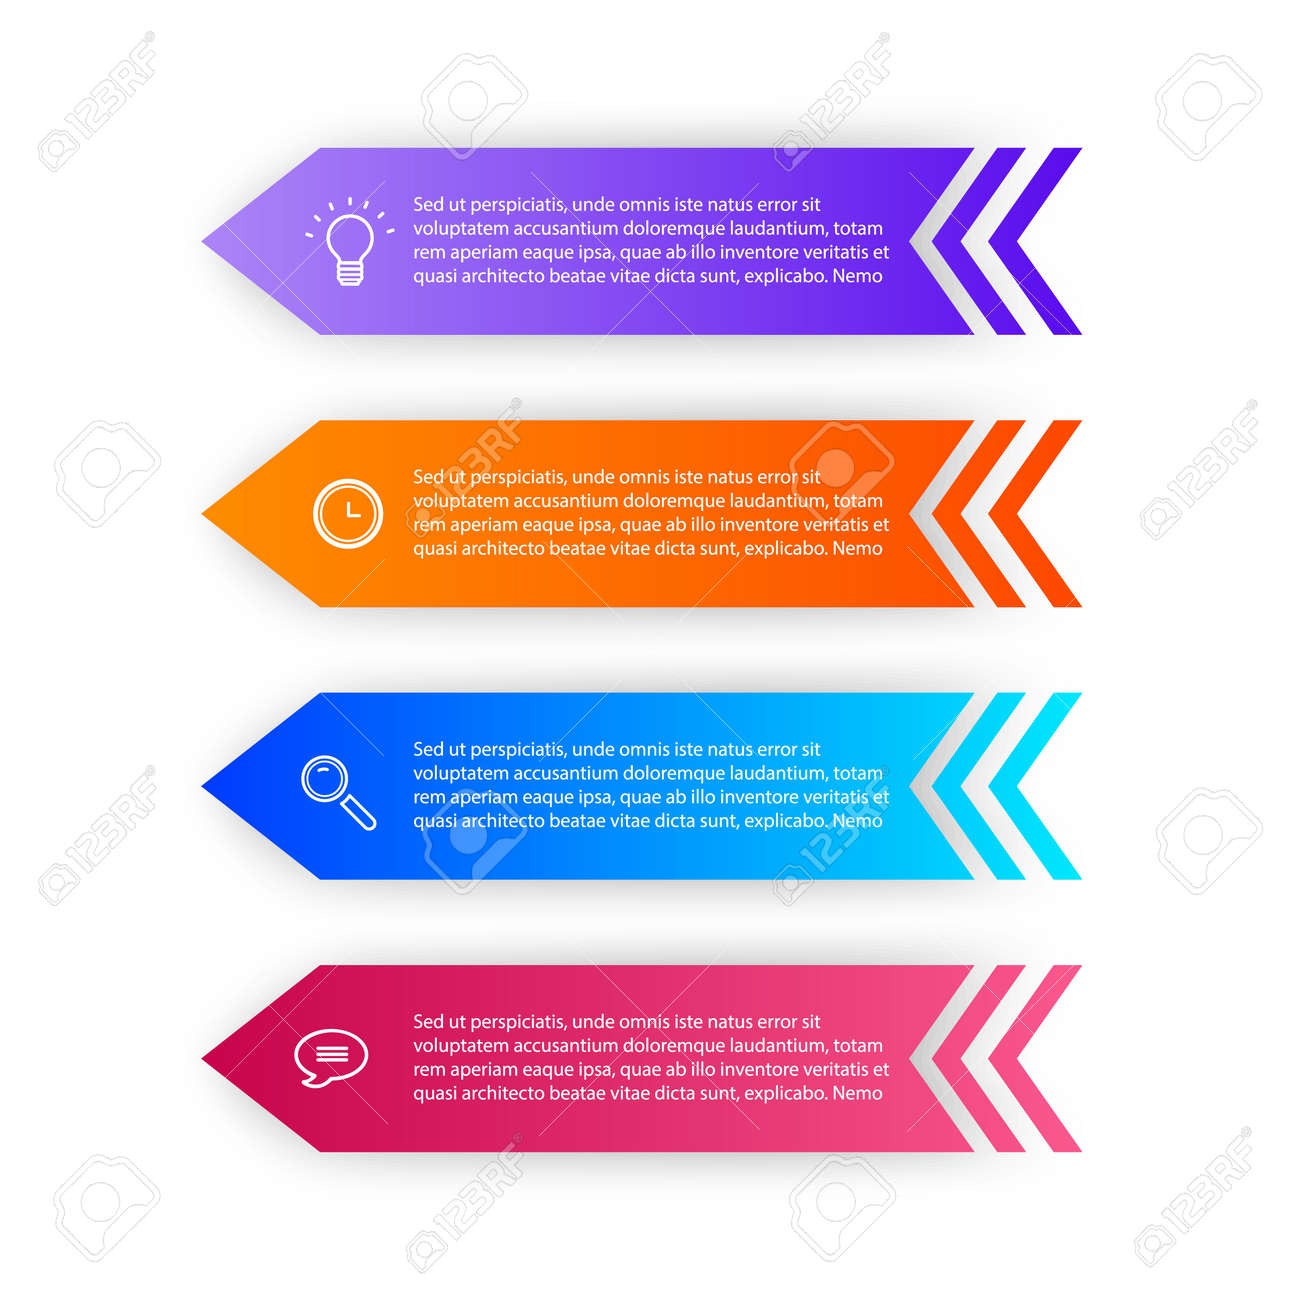 Infographic design template with icons and 4 options or steps. Can be used for process diagram, presentations, workflow layout or banner, Vector illustrations - 171657238